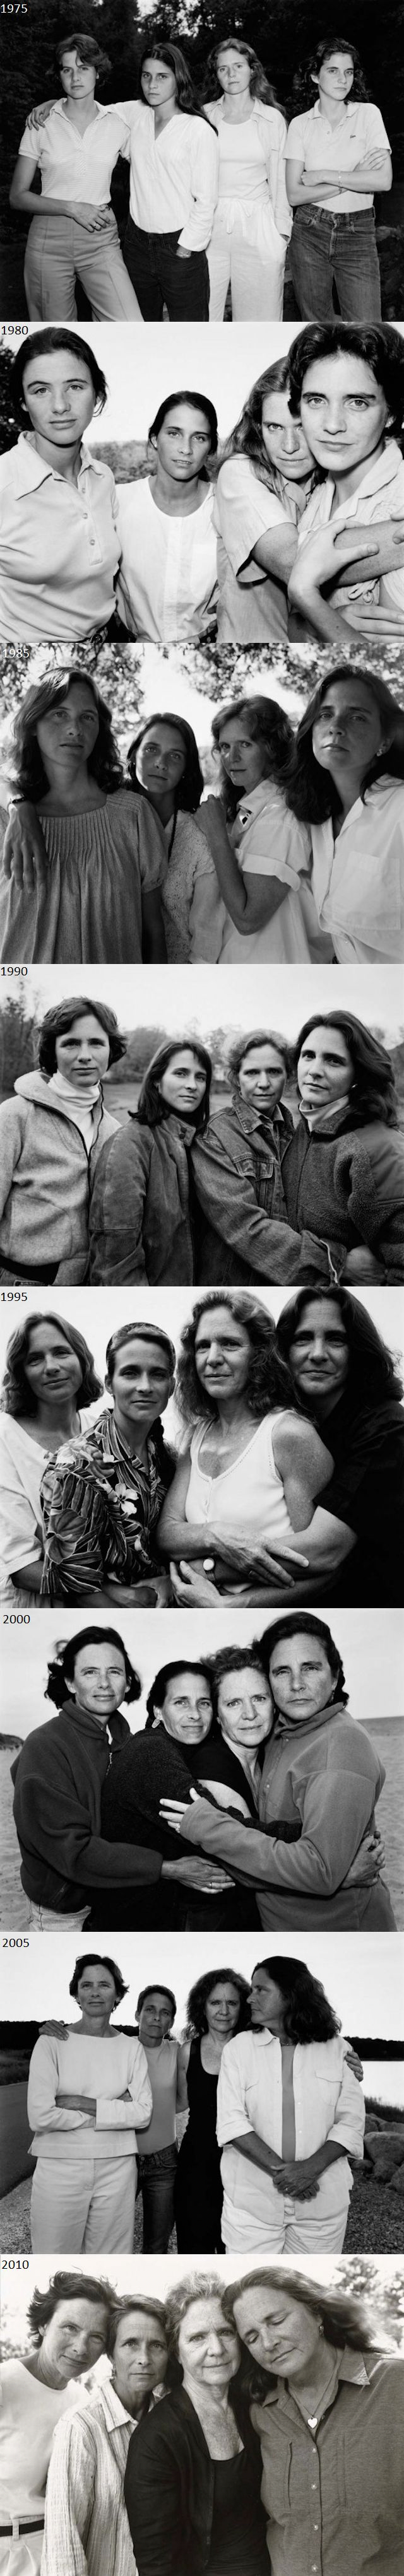 3. These 5 sisters take photo every year from 1975 to 2010 and the result was amazing.